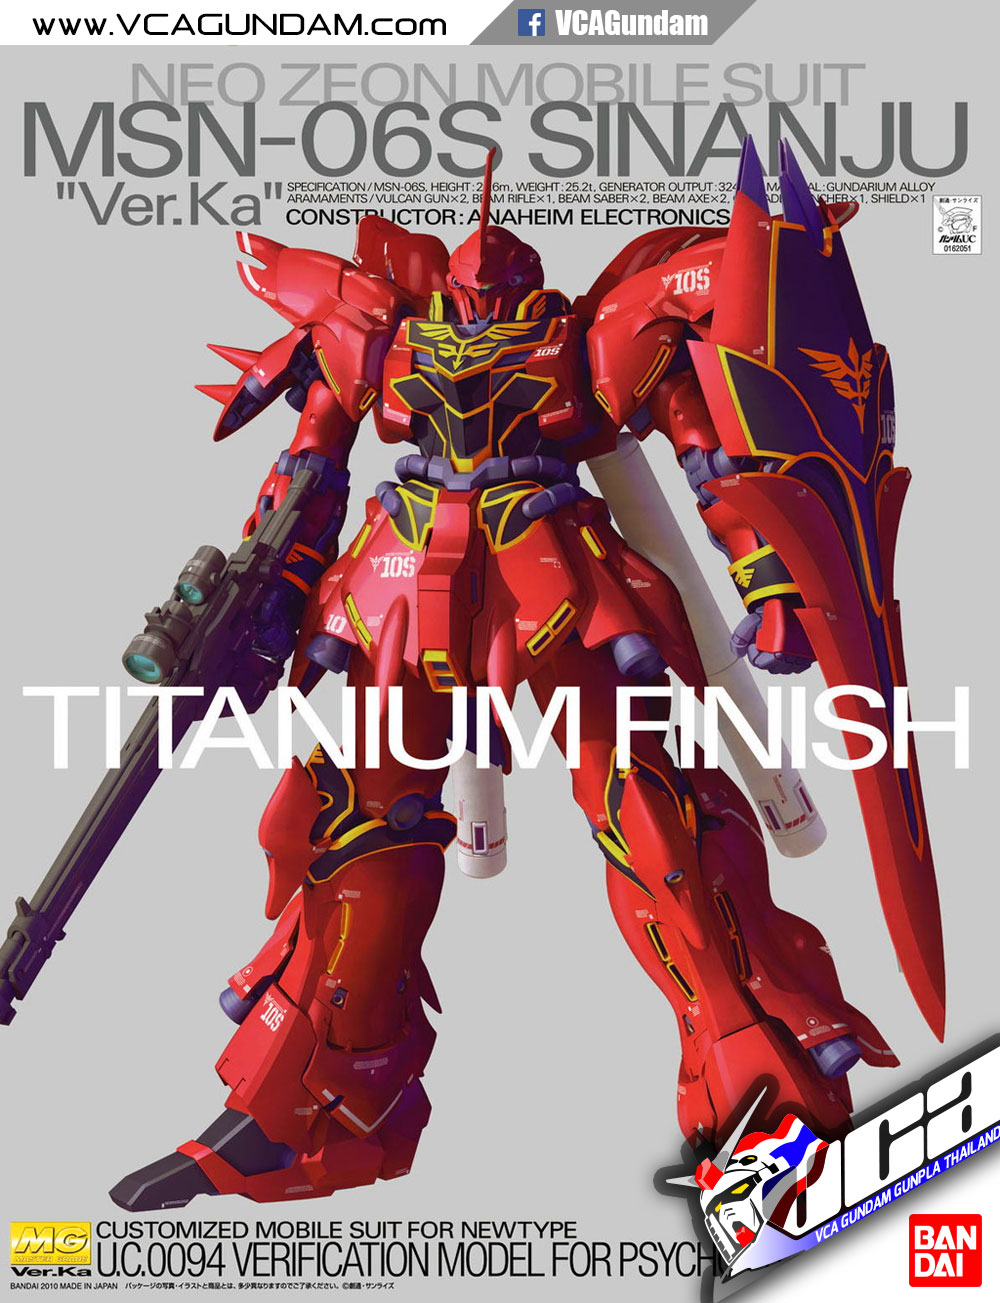 MG SINANJU VER KA TITANIUM FINISH ซาซาบิ